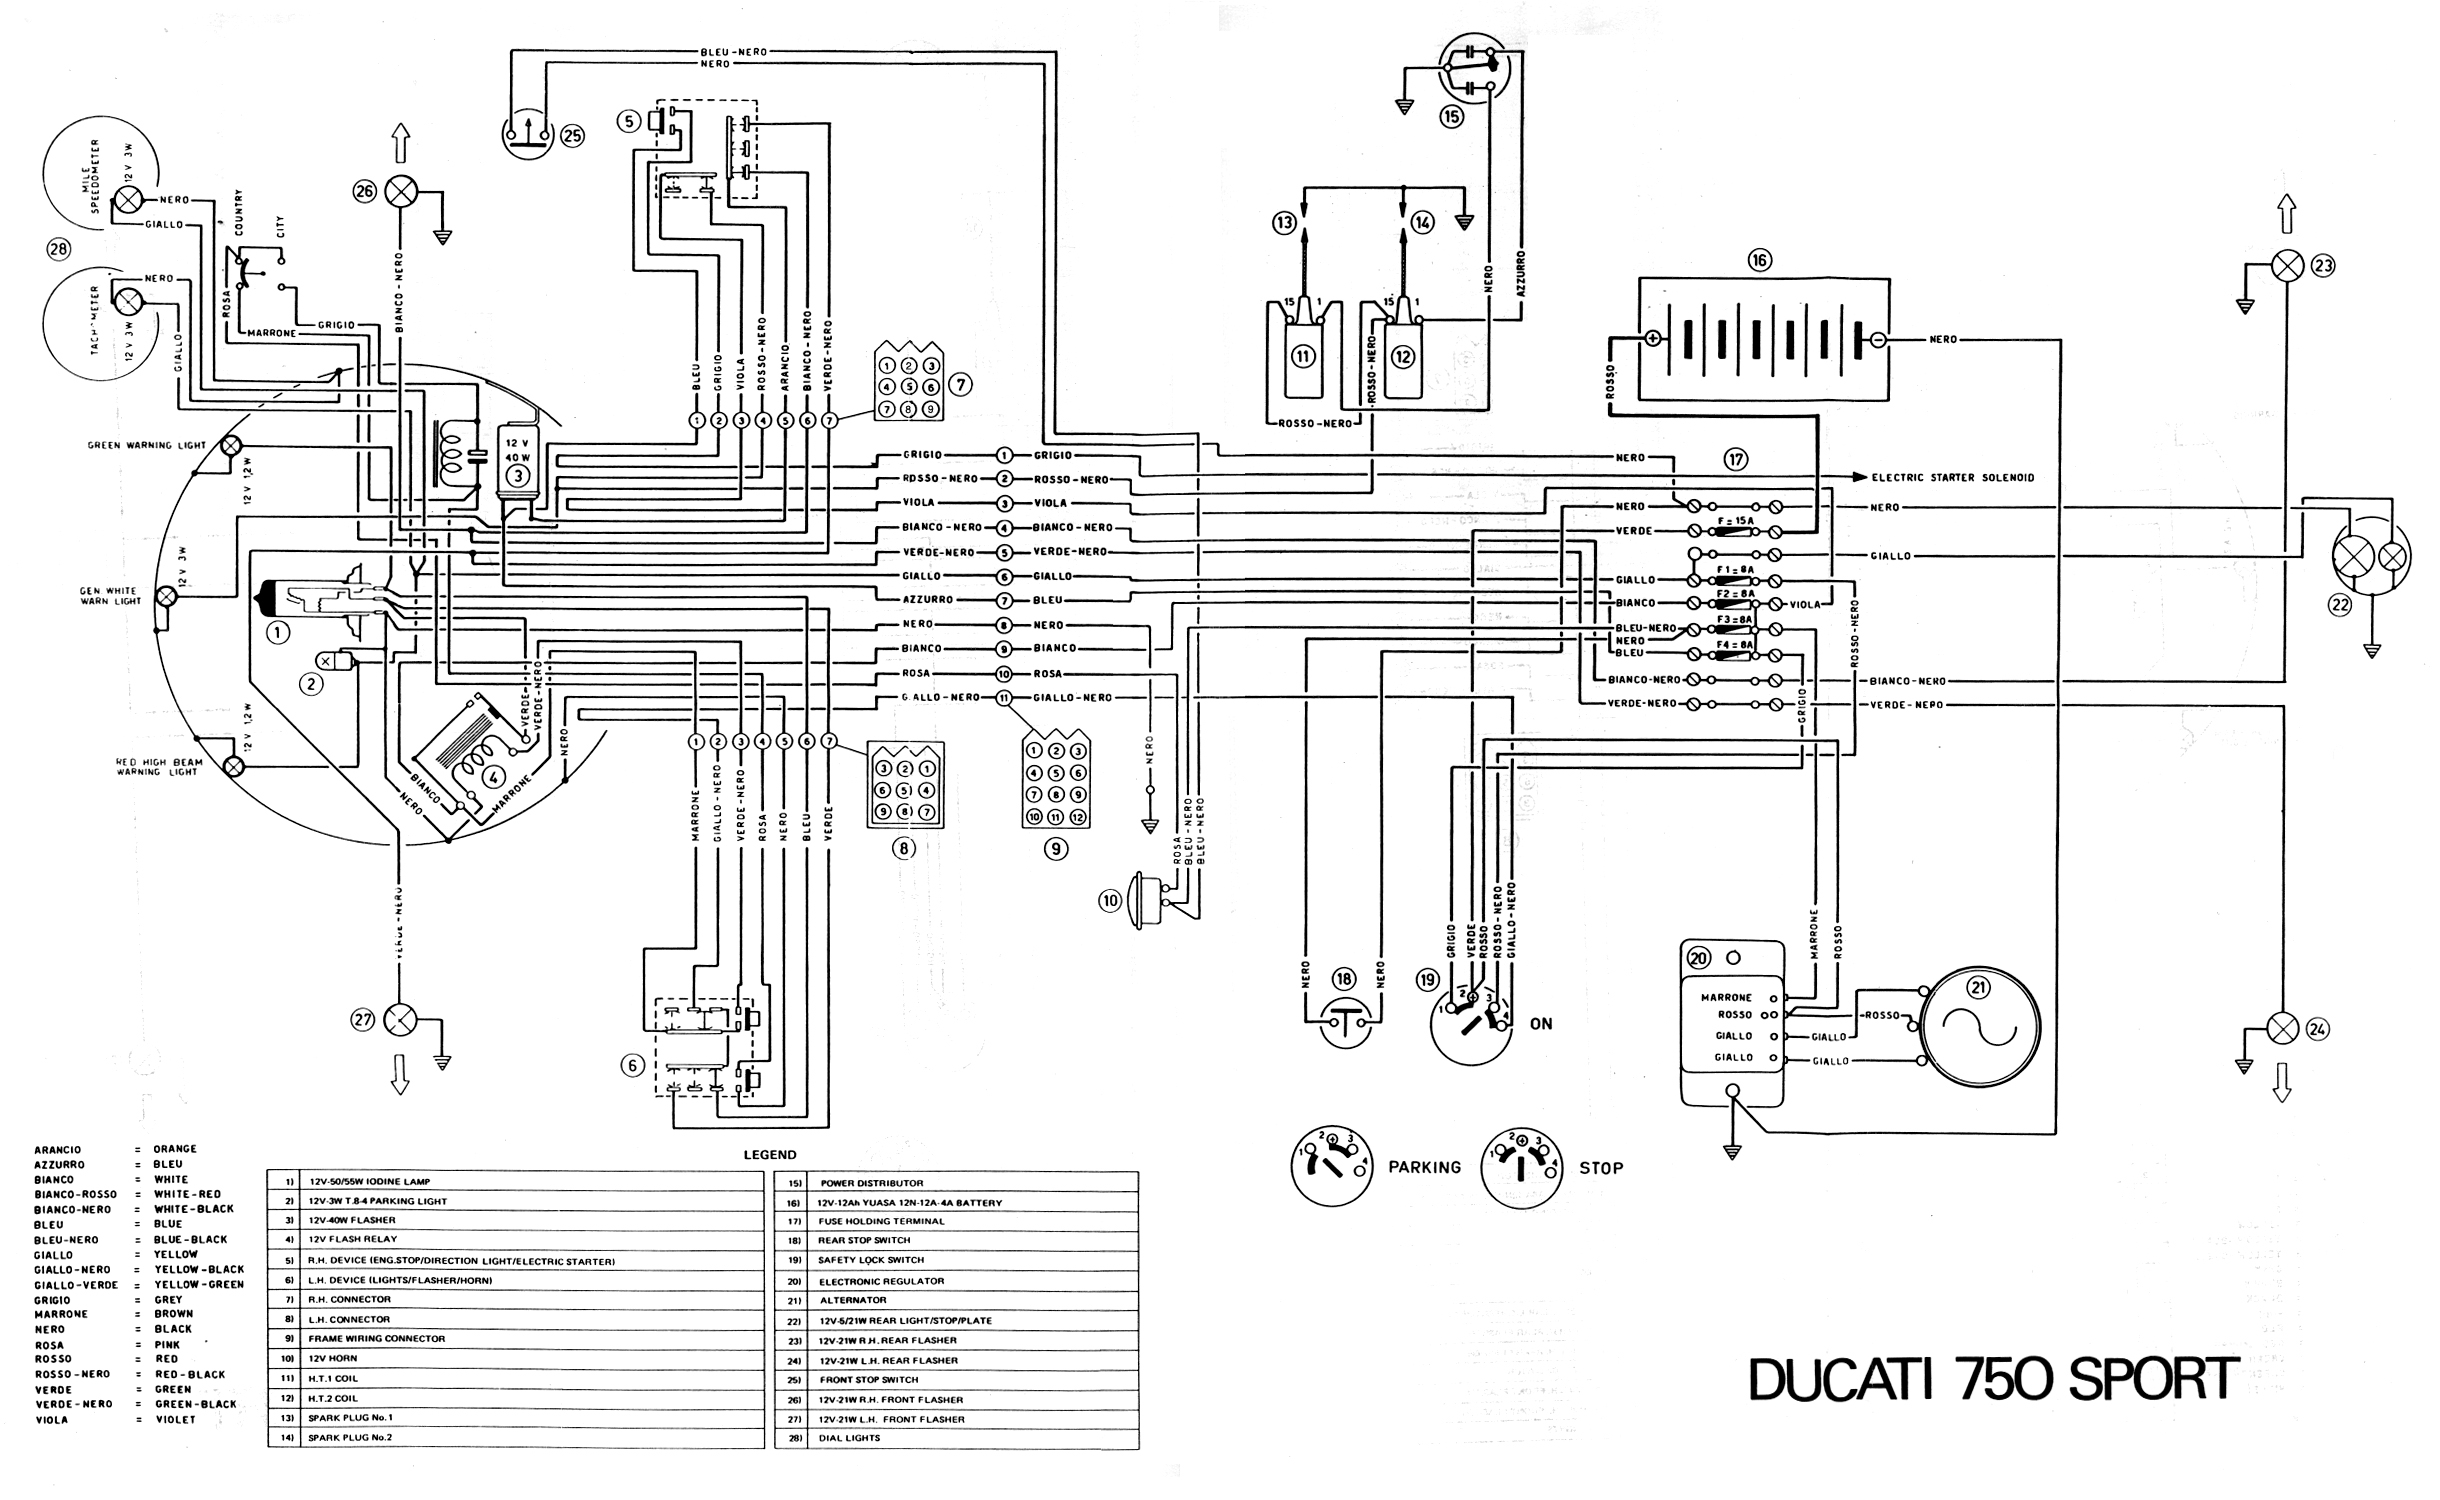 B2320 Kubota Wiring Diagram furthermore T9078603 Need wiring diagram xt125 any1 help together with Kubota B2150 Parts moreover L2350 Kubota Wiring Diagram together with Kubota Rtv Wiring Diagram. on kubota rtv 1100 wiring diagram